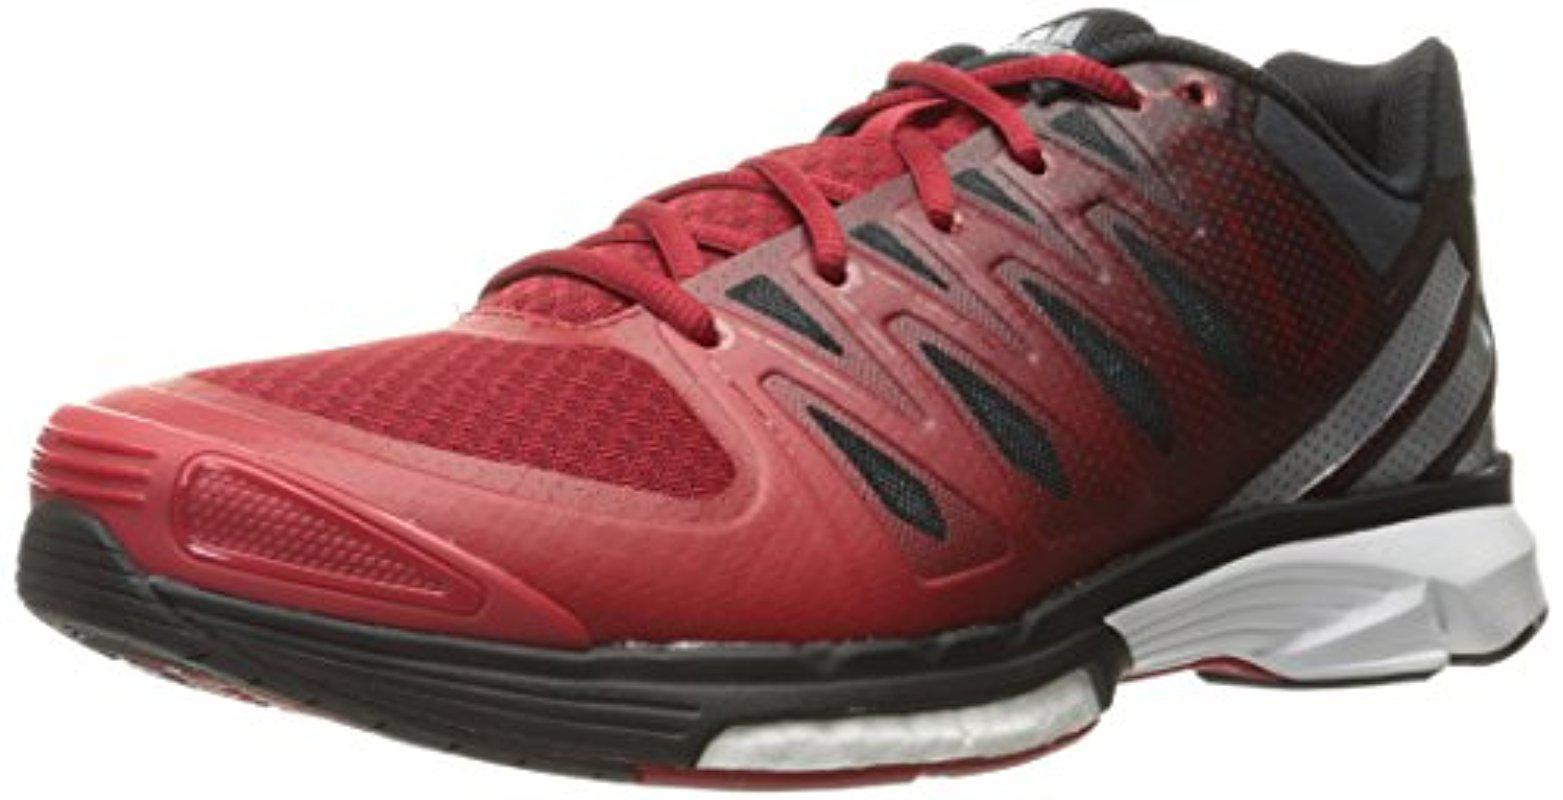 incredible prices the sale of shoes release date: Performance Volley Response 2 Boost W Volleyball Shoe